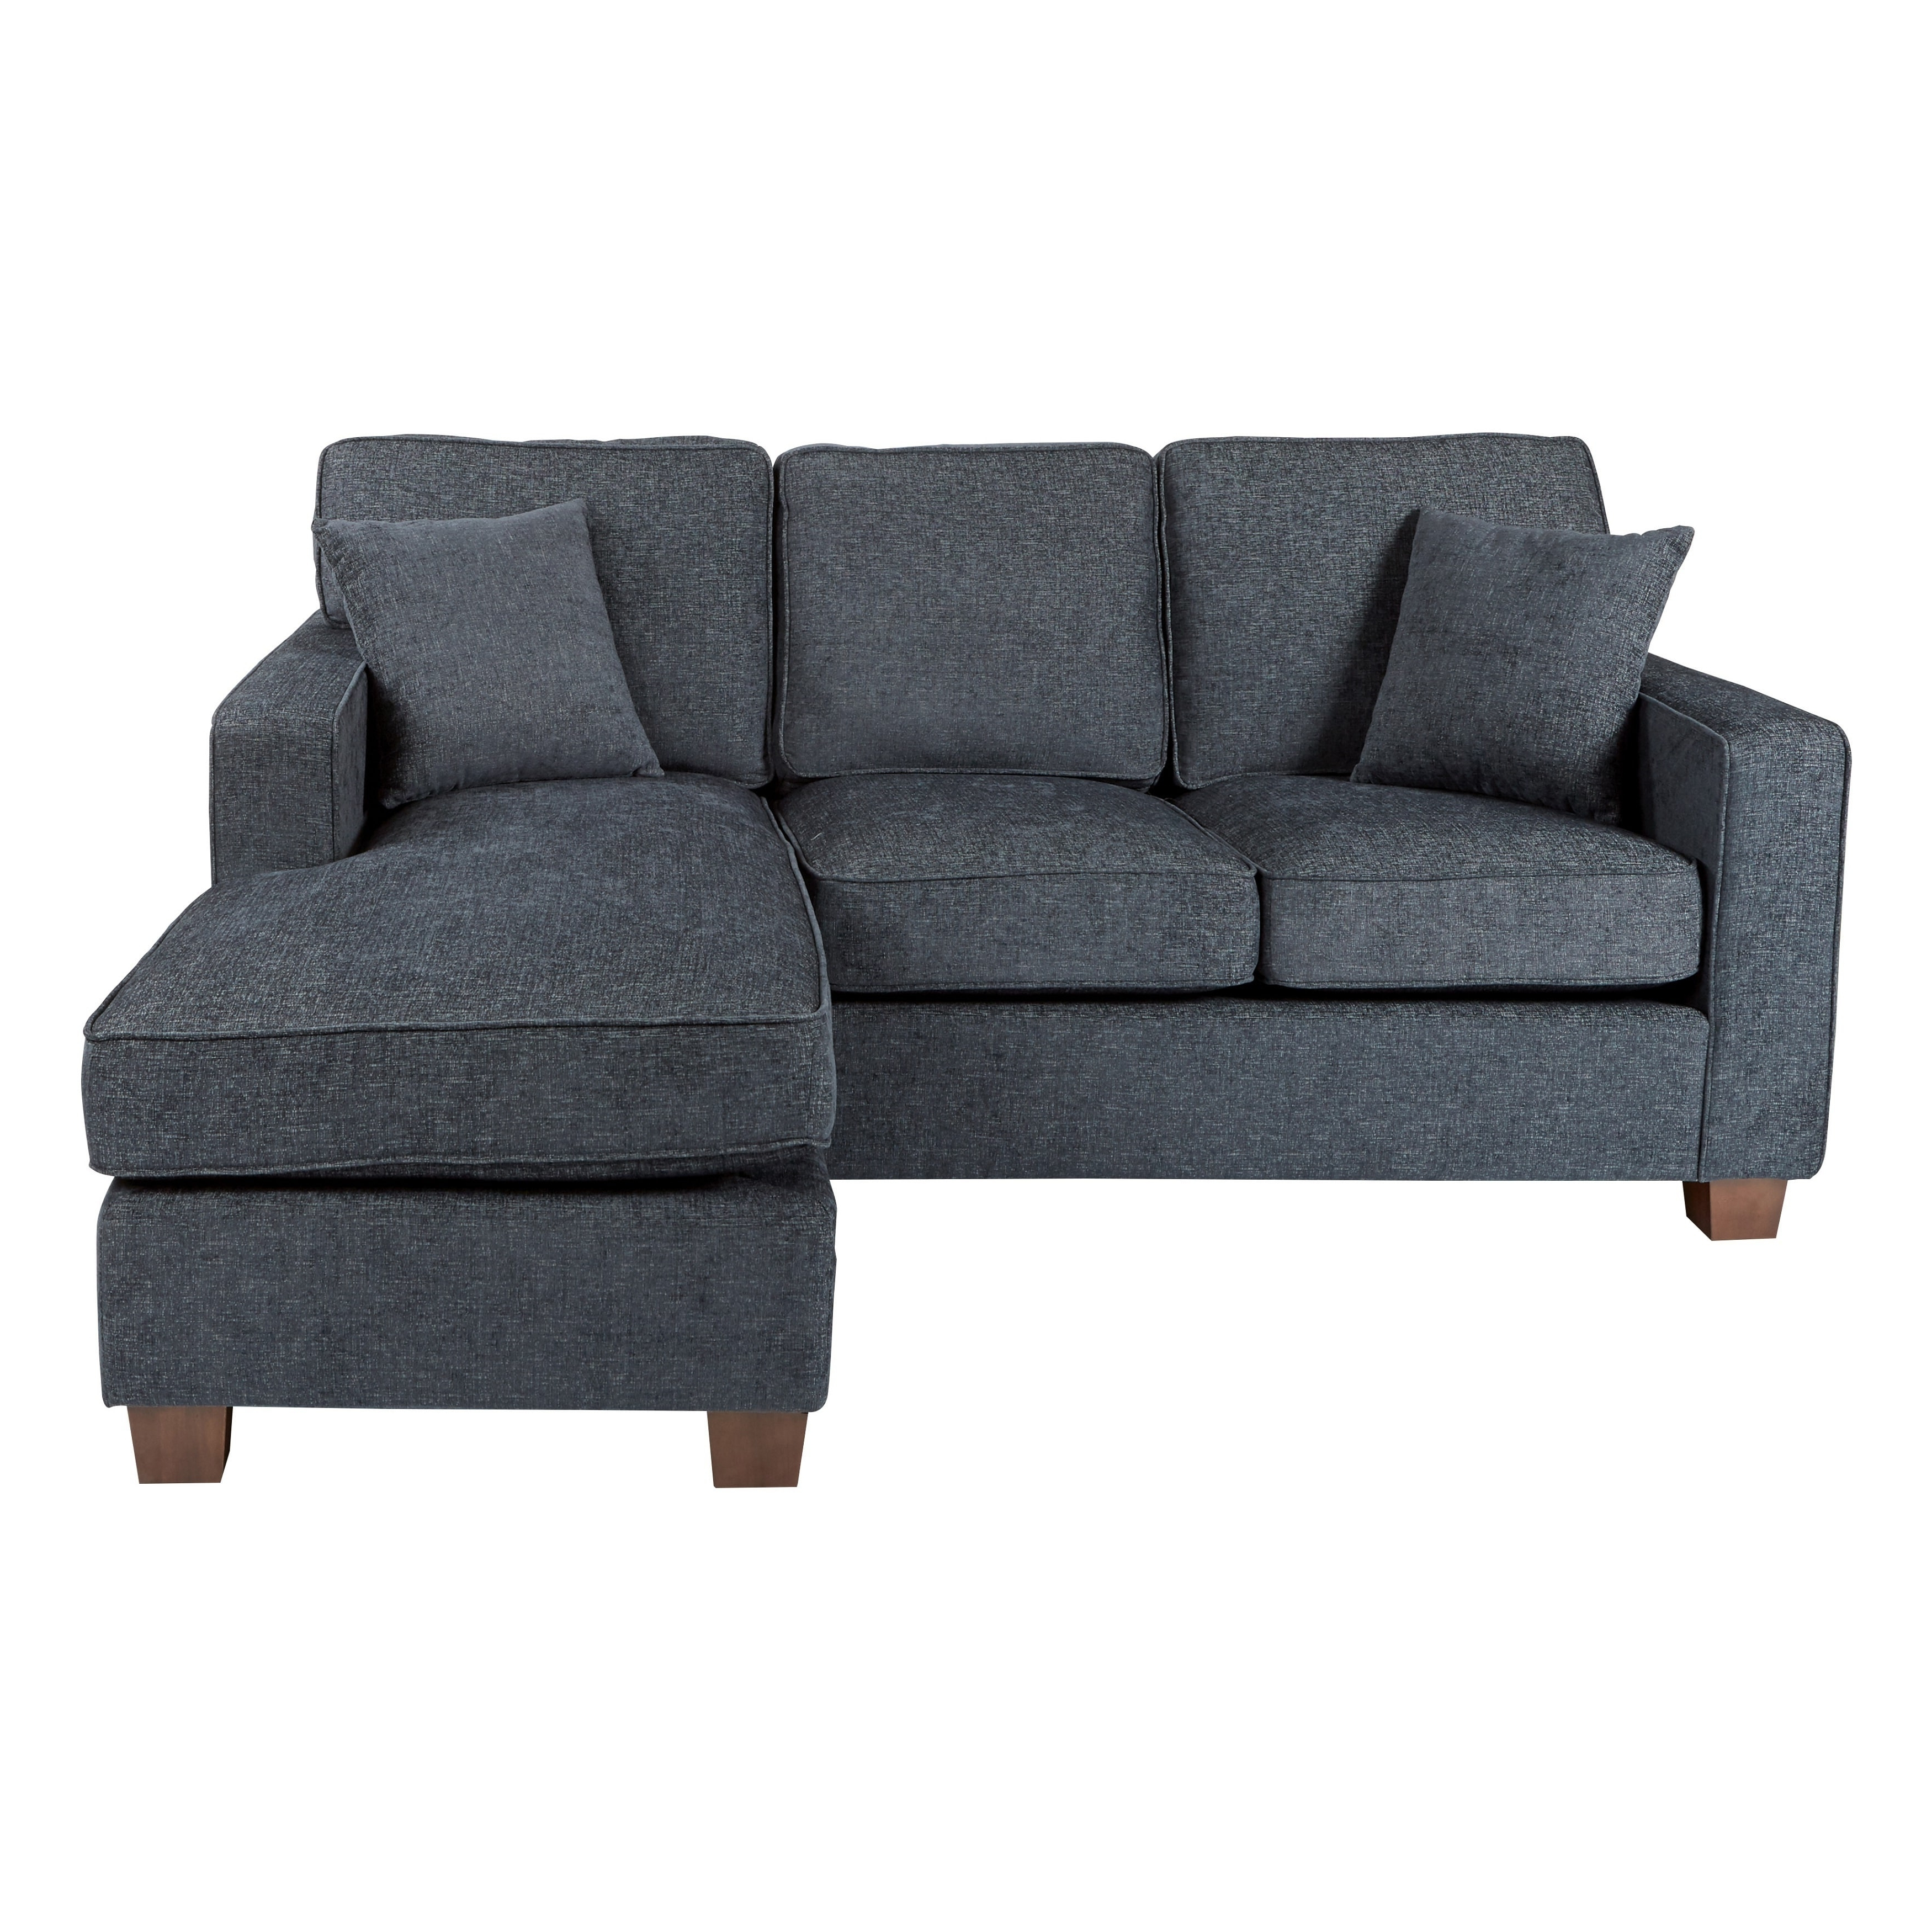 Porch & Den Over The Rhine Renner Reversible Chaise Sectional Sofa Intended For 2018 Sofas With Reversible Chaise Lounge (View 11 of 15)